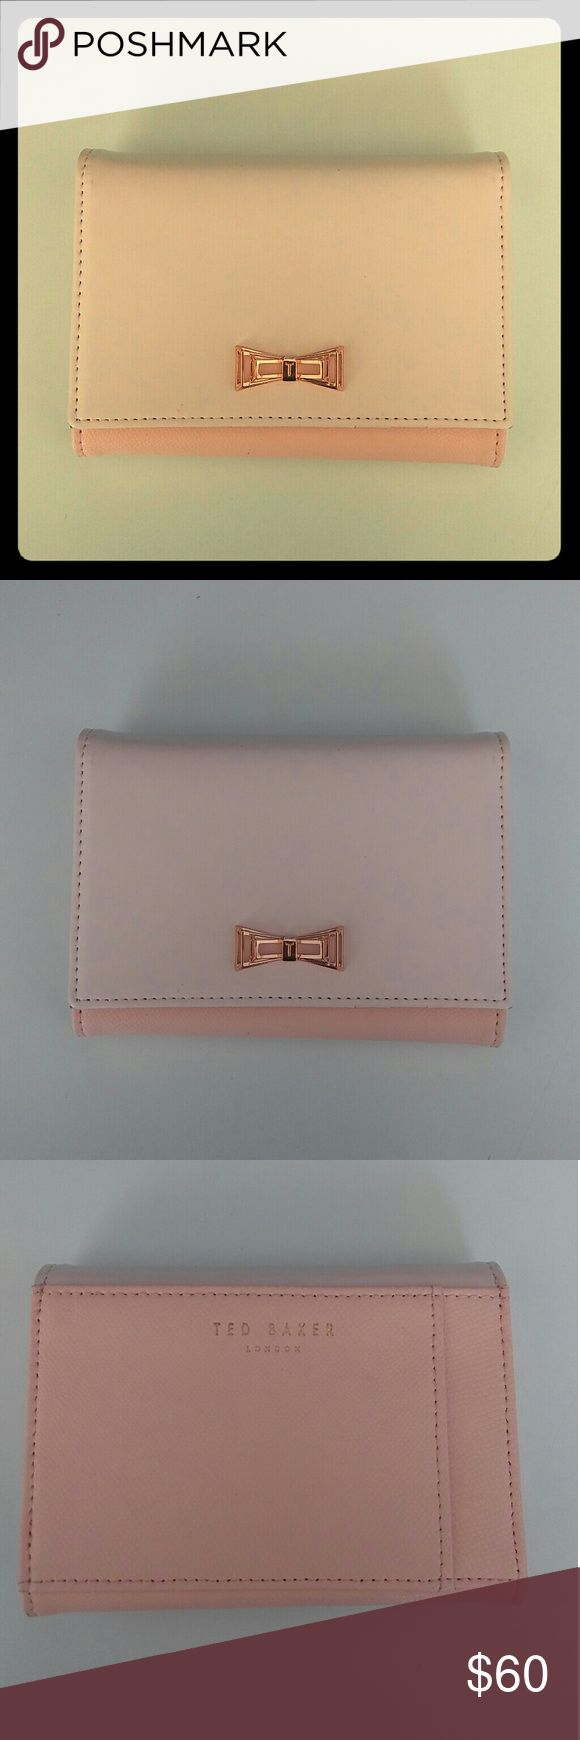 Ted baker wallet. New Ted baker wallet. Brand new. Never used Ted Baker London Bags Wallets